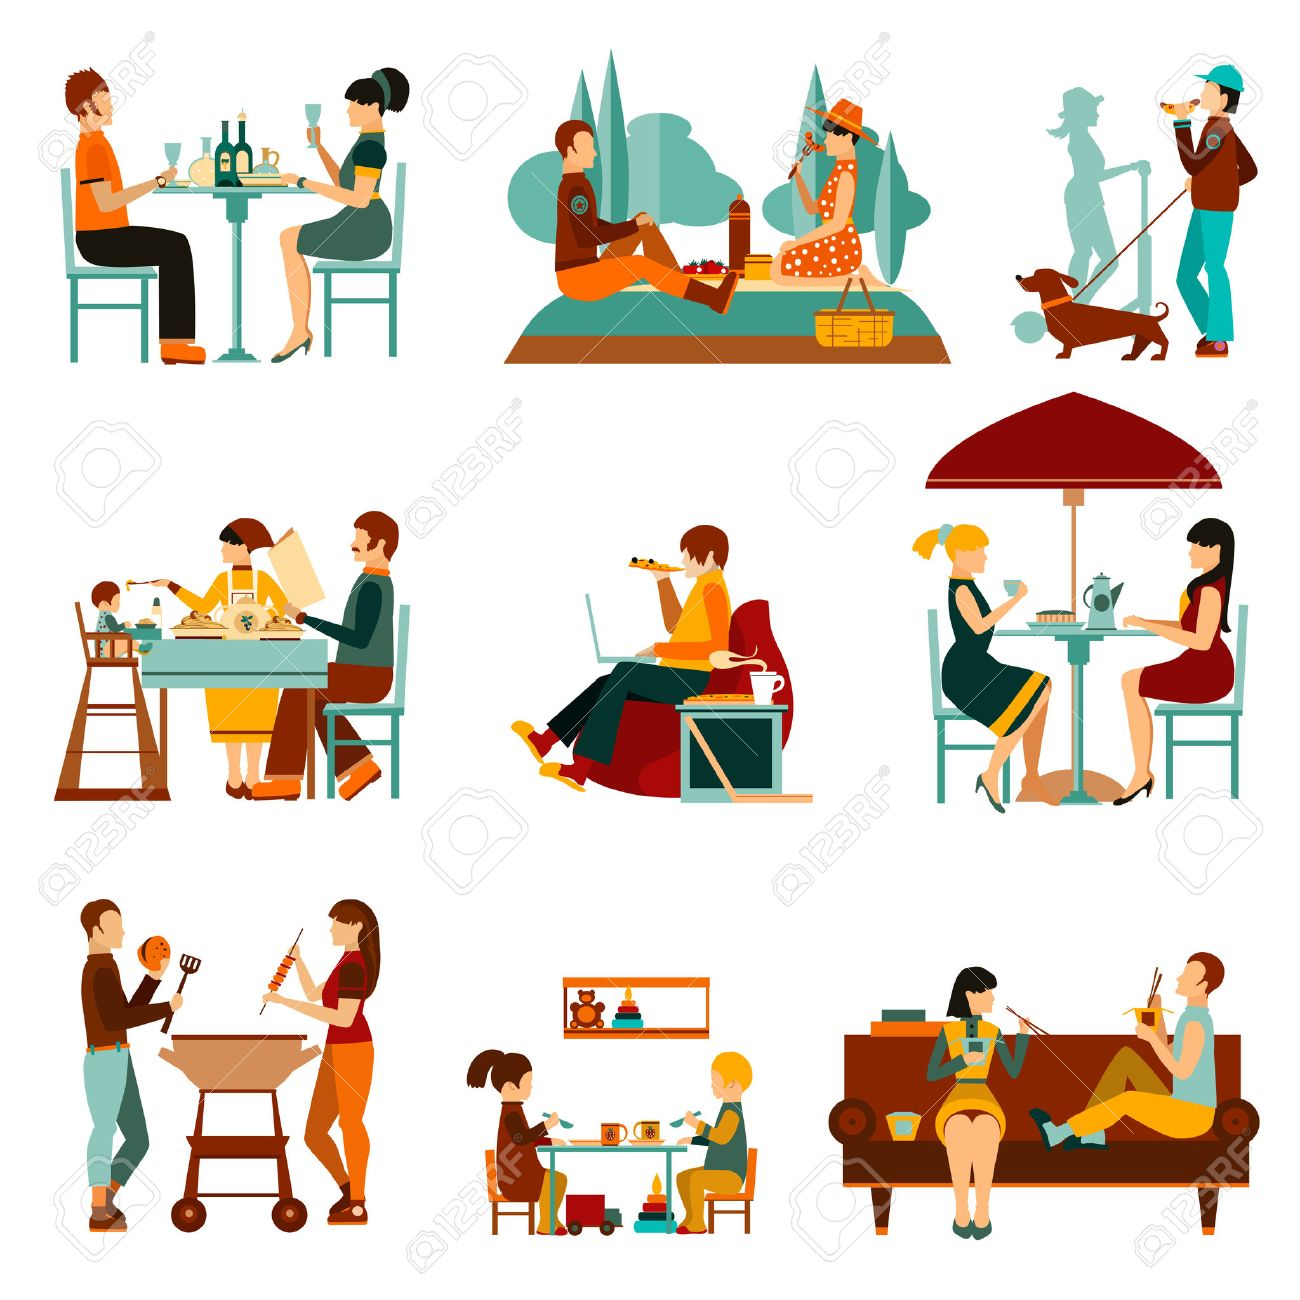 People eating out and an homes flat icons set isolated vector illustration - 46499062